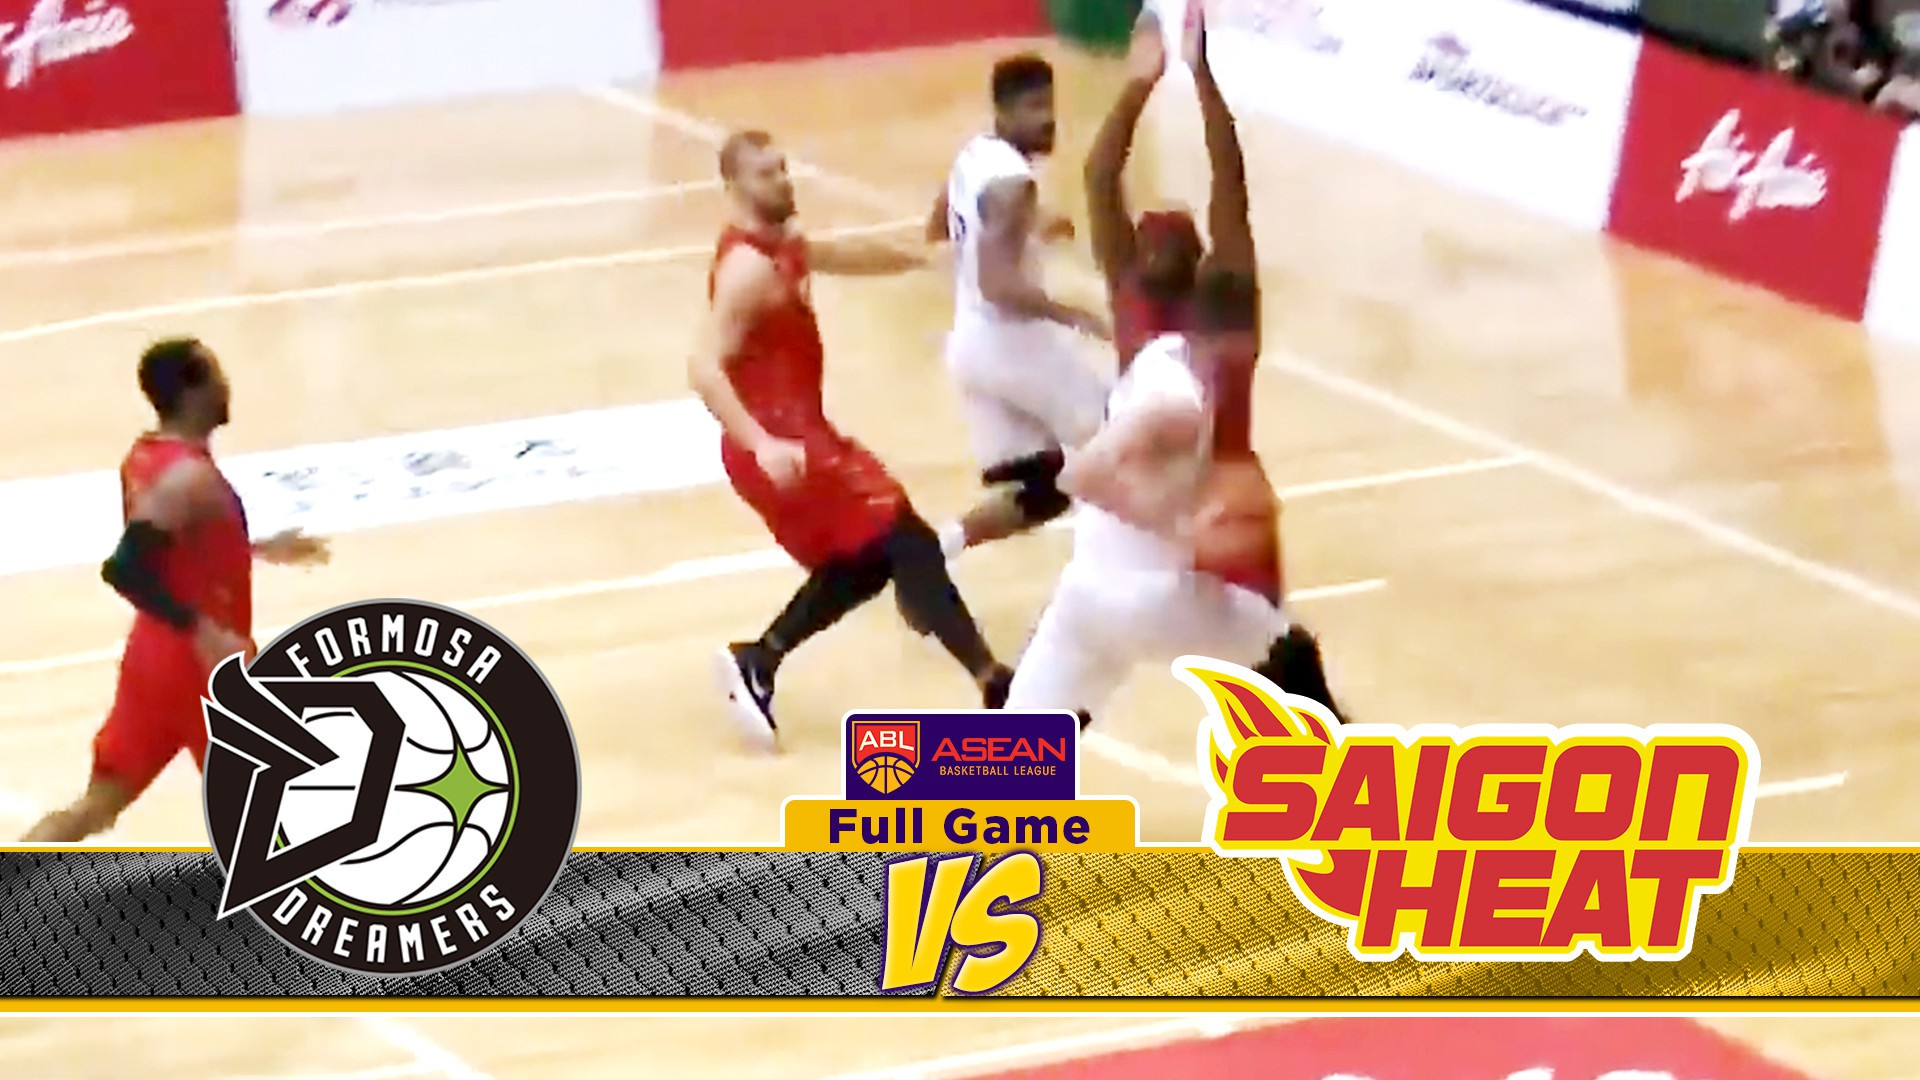 Full Games Formosa Dreamers VS Saigon Heat ABL 2018 2019 17